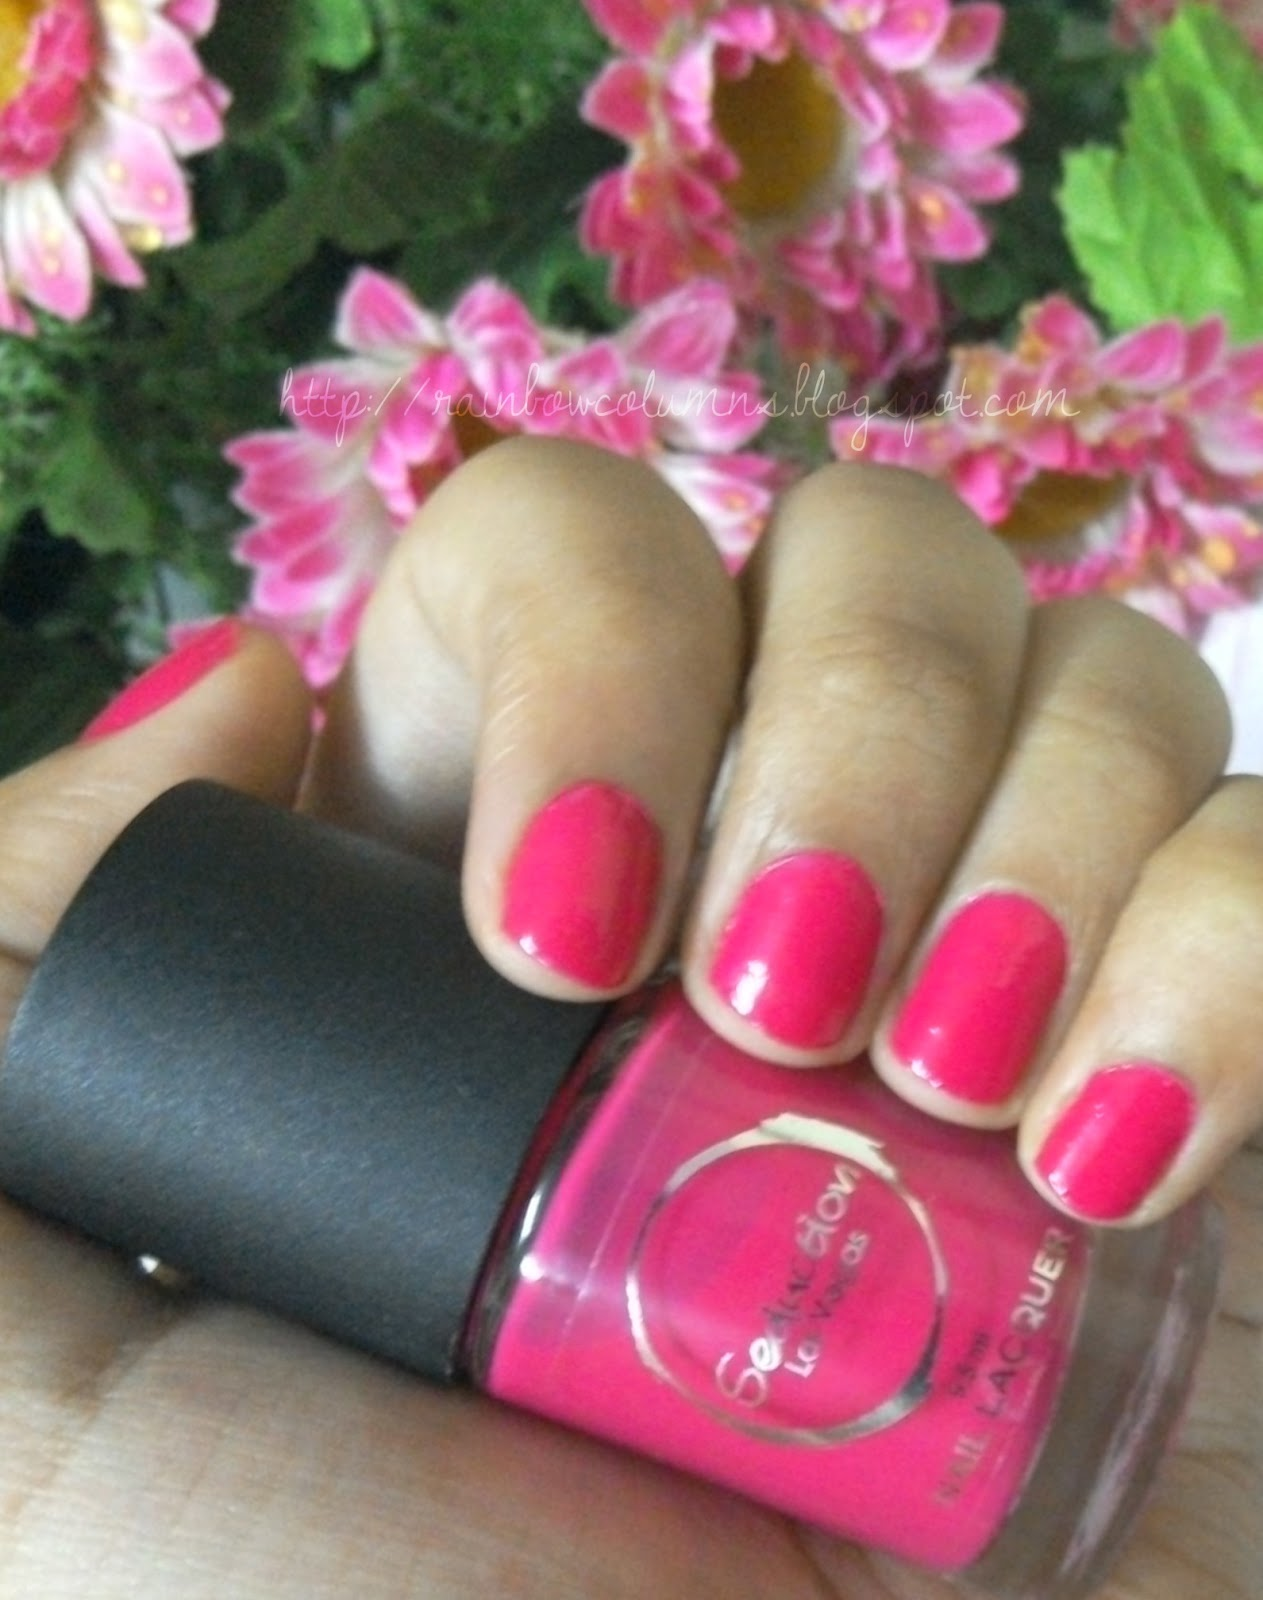 Review & Swatches | Seduction Las Vegas Nail Lacquer - Lust